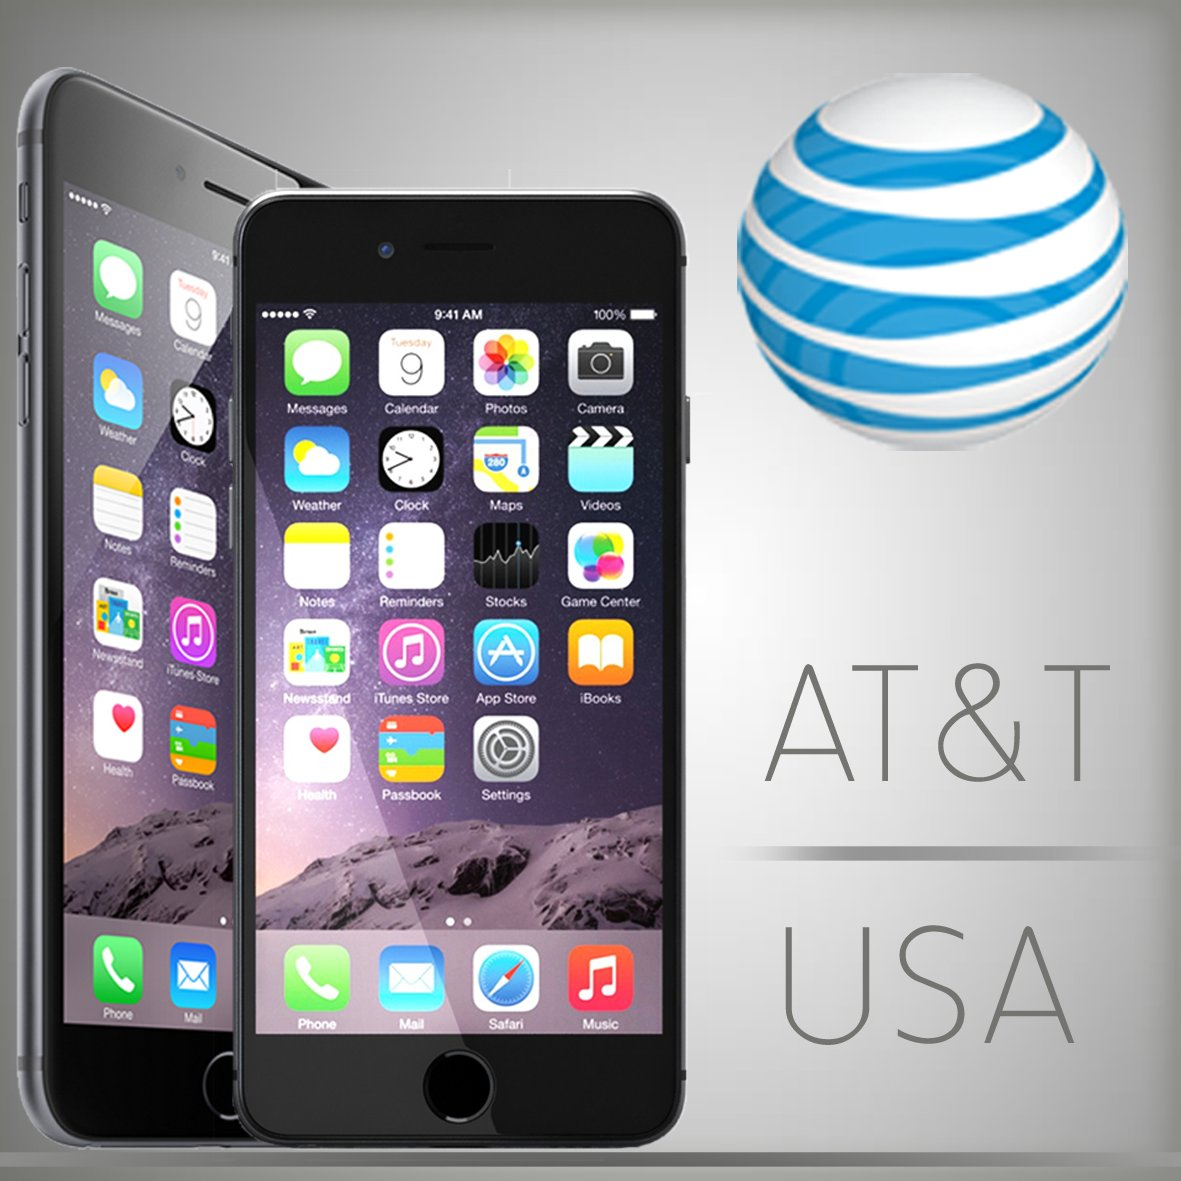 New Listing NEW Apple iPhone 7 - 32GB - Rose Gold Factory Unlocked for AT&T T-Mobile & More Brand New · Apple iPhone 7 · 32 GB · Unlocked out of 5 stars.